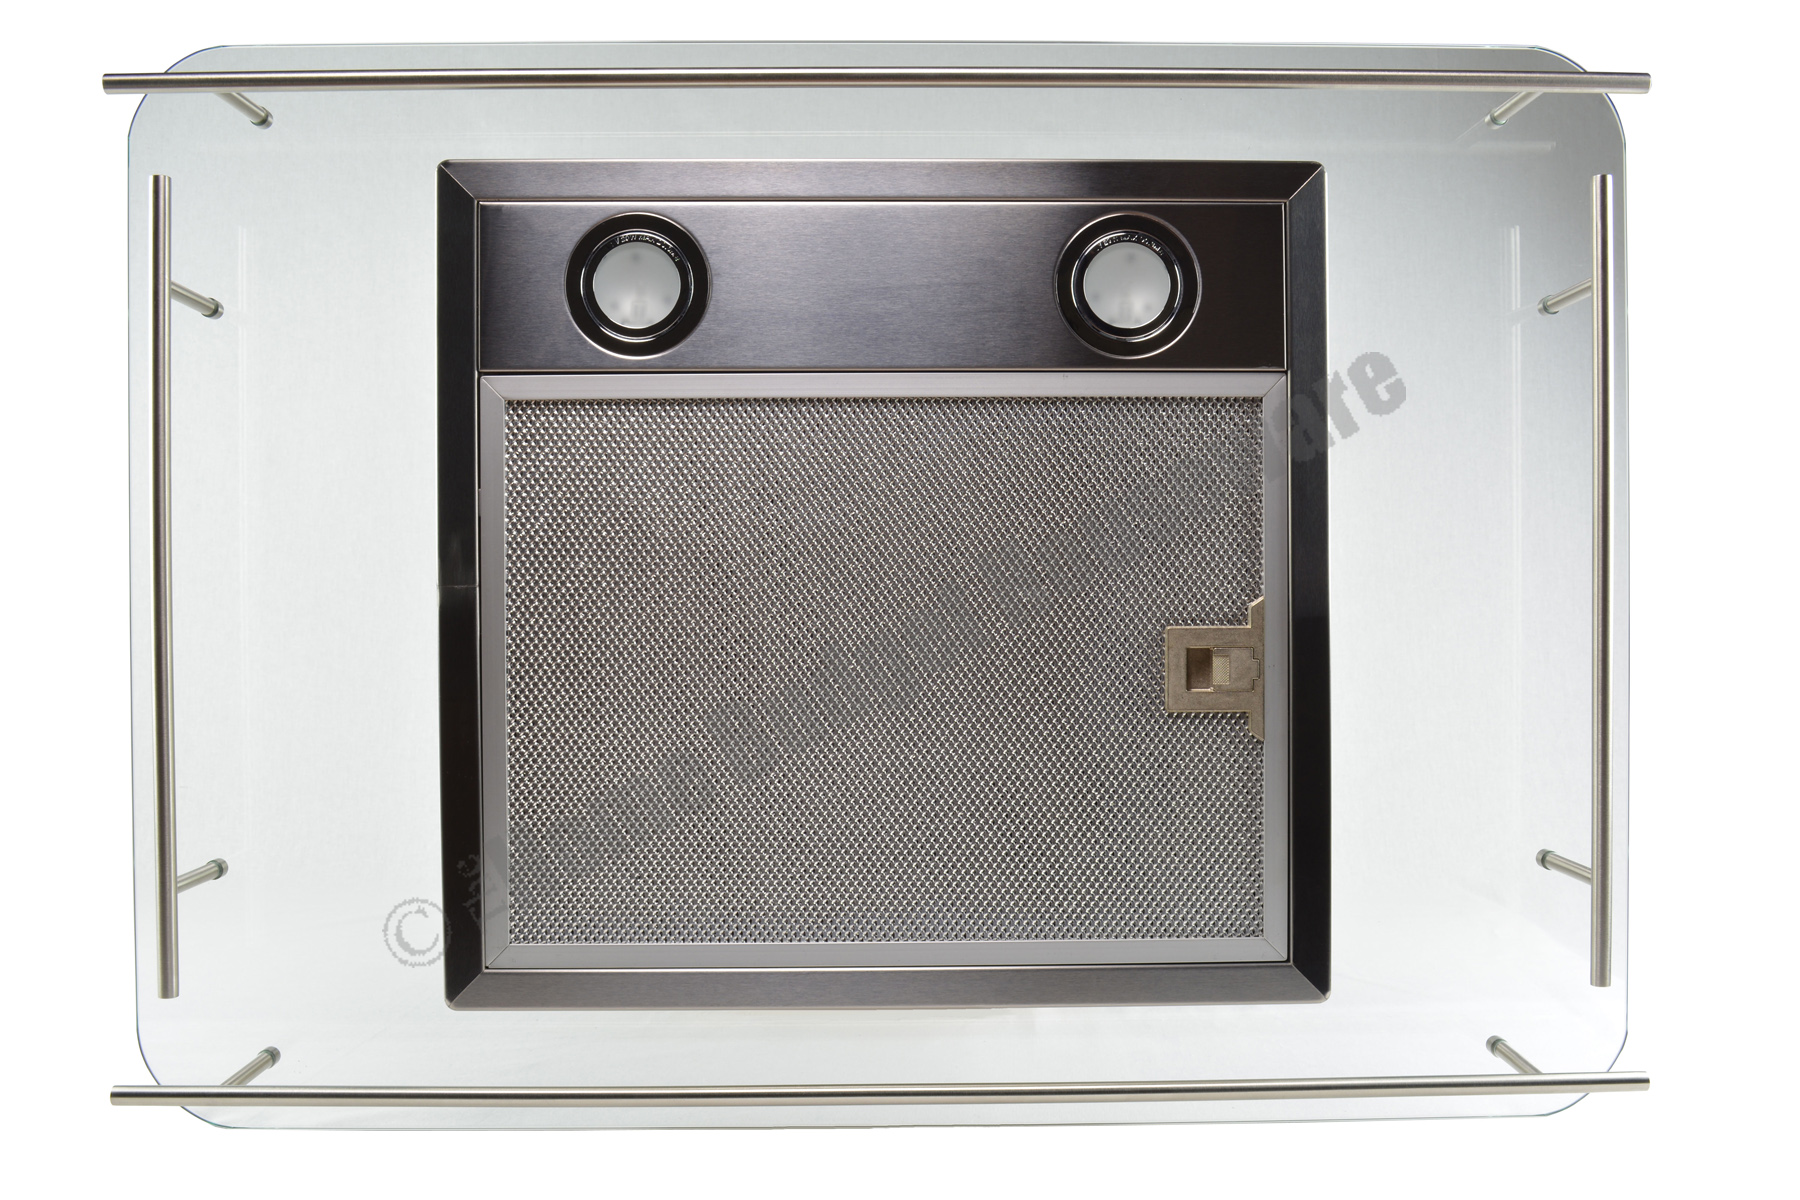 Stove Ventilation Systems : Stainless steel quot kitchen range hoods island stove